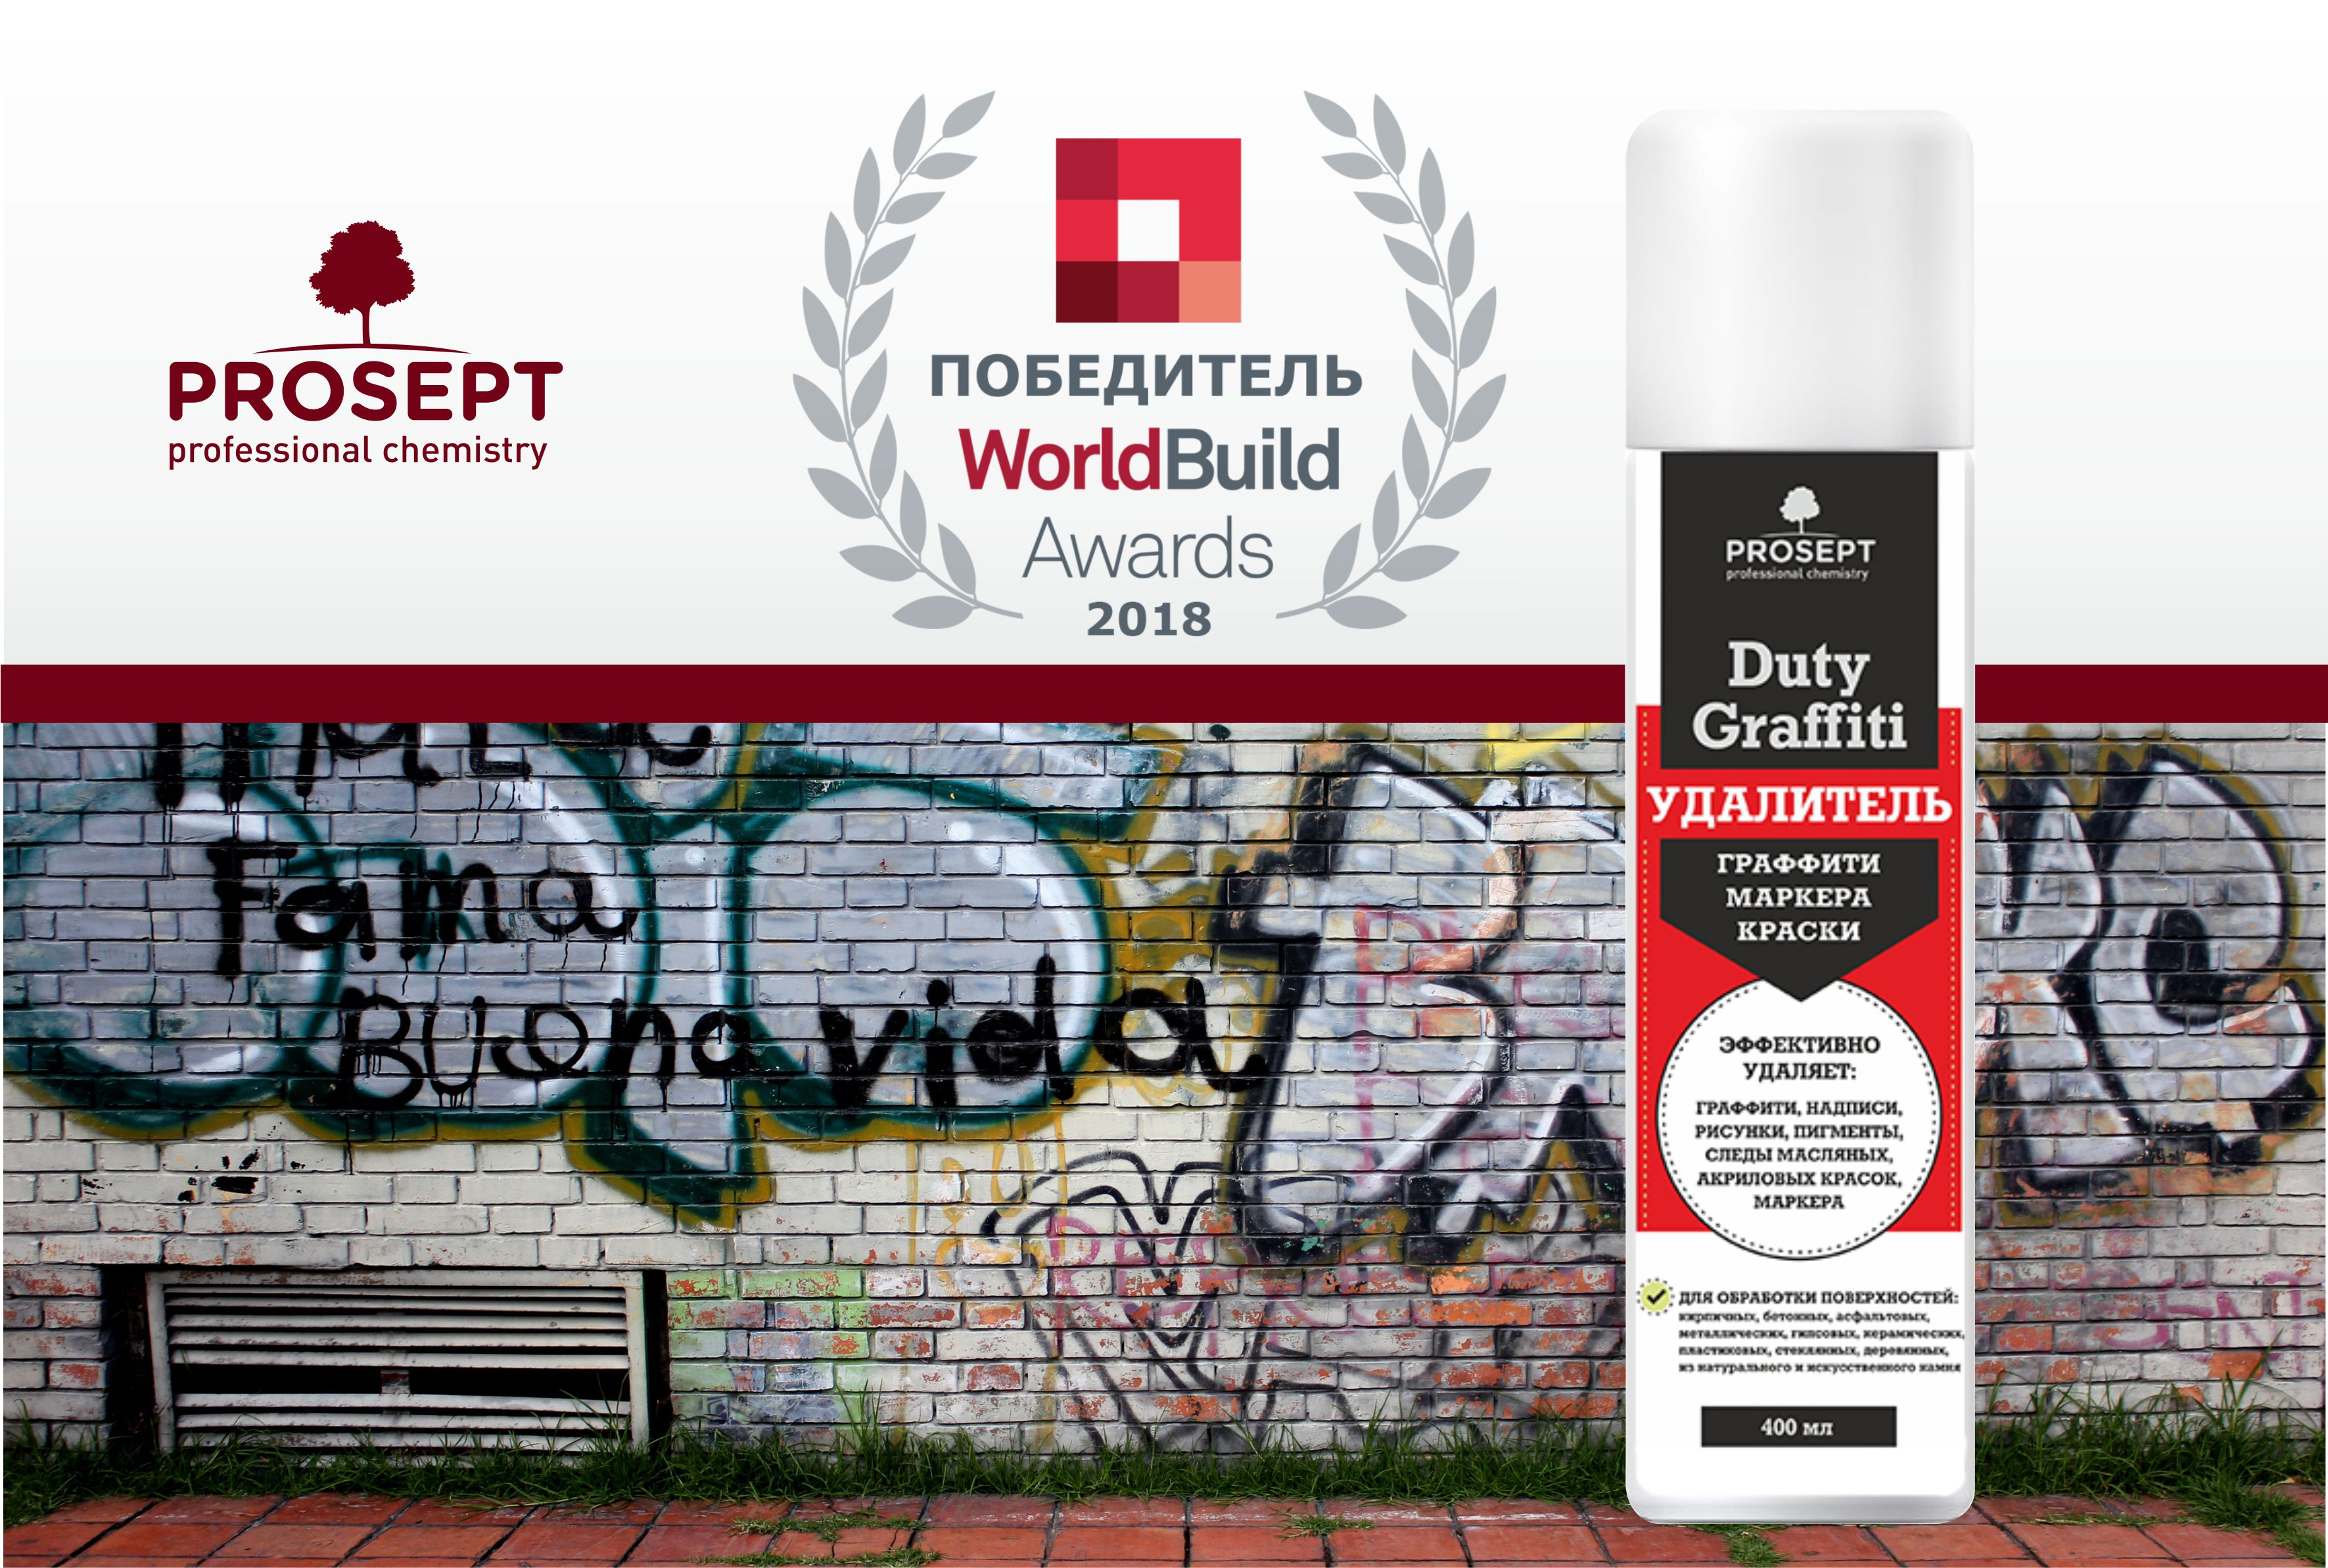 PROSEPT Duty Graffiti — победитель премии WorldBuild Awards 2018